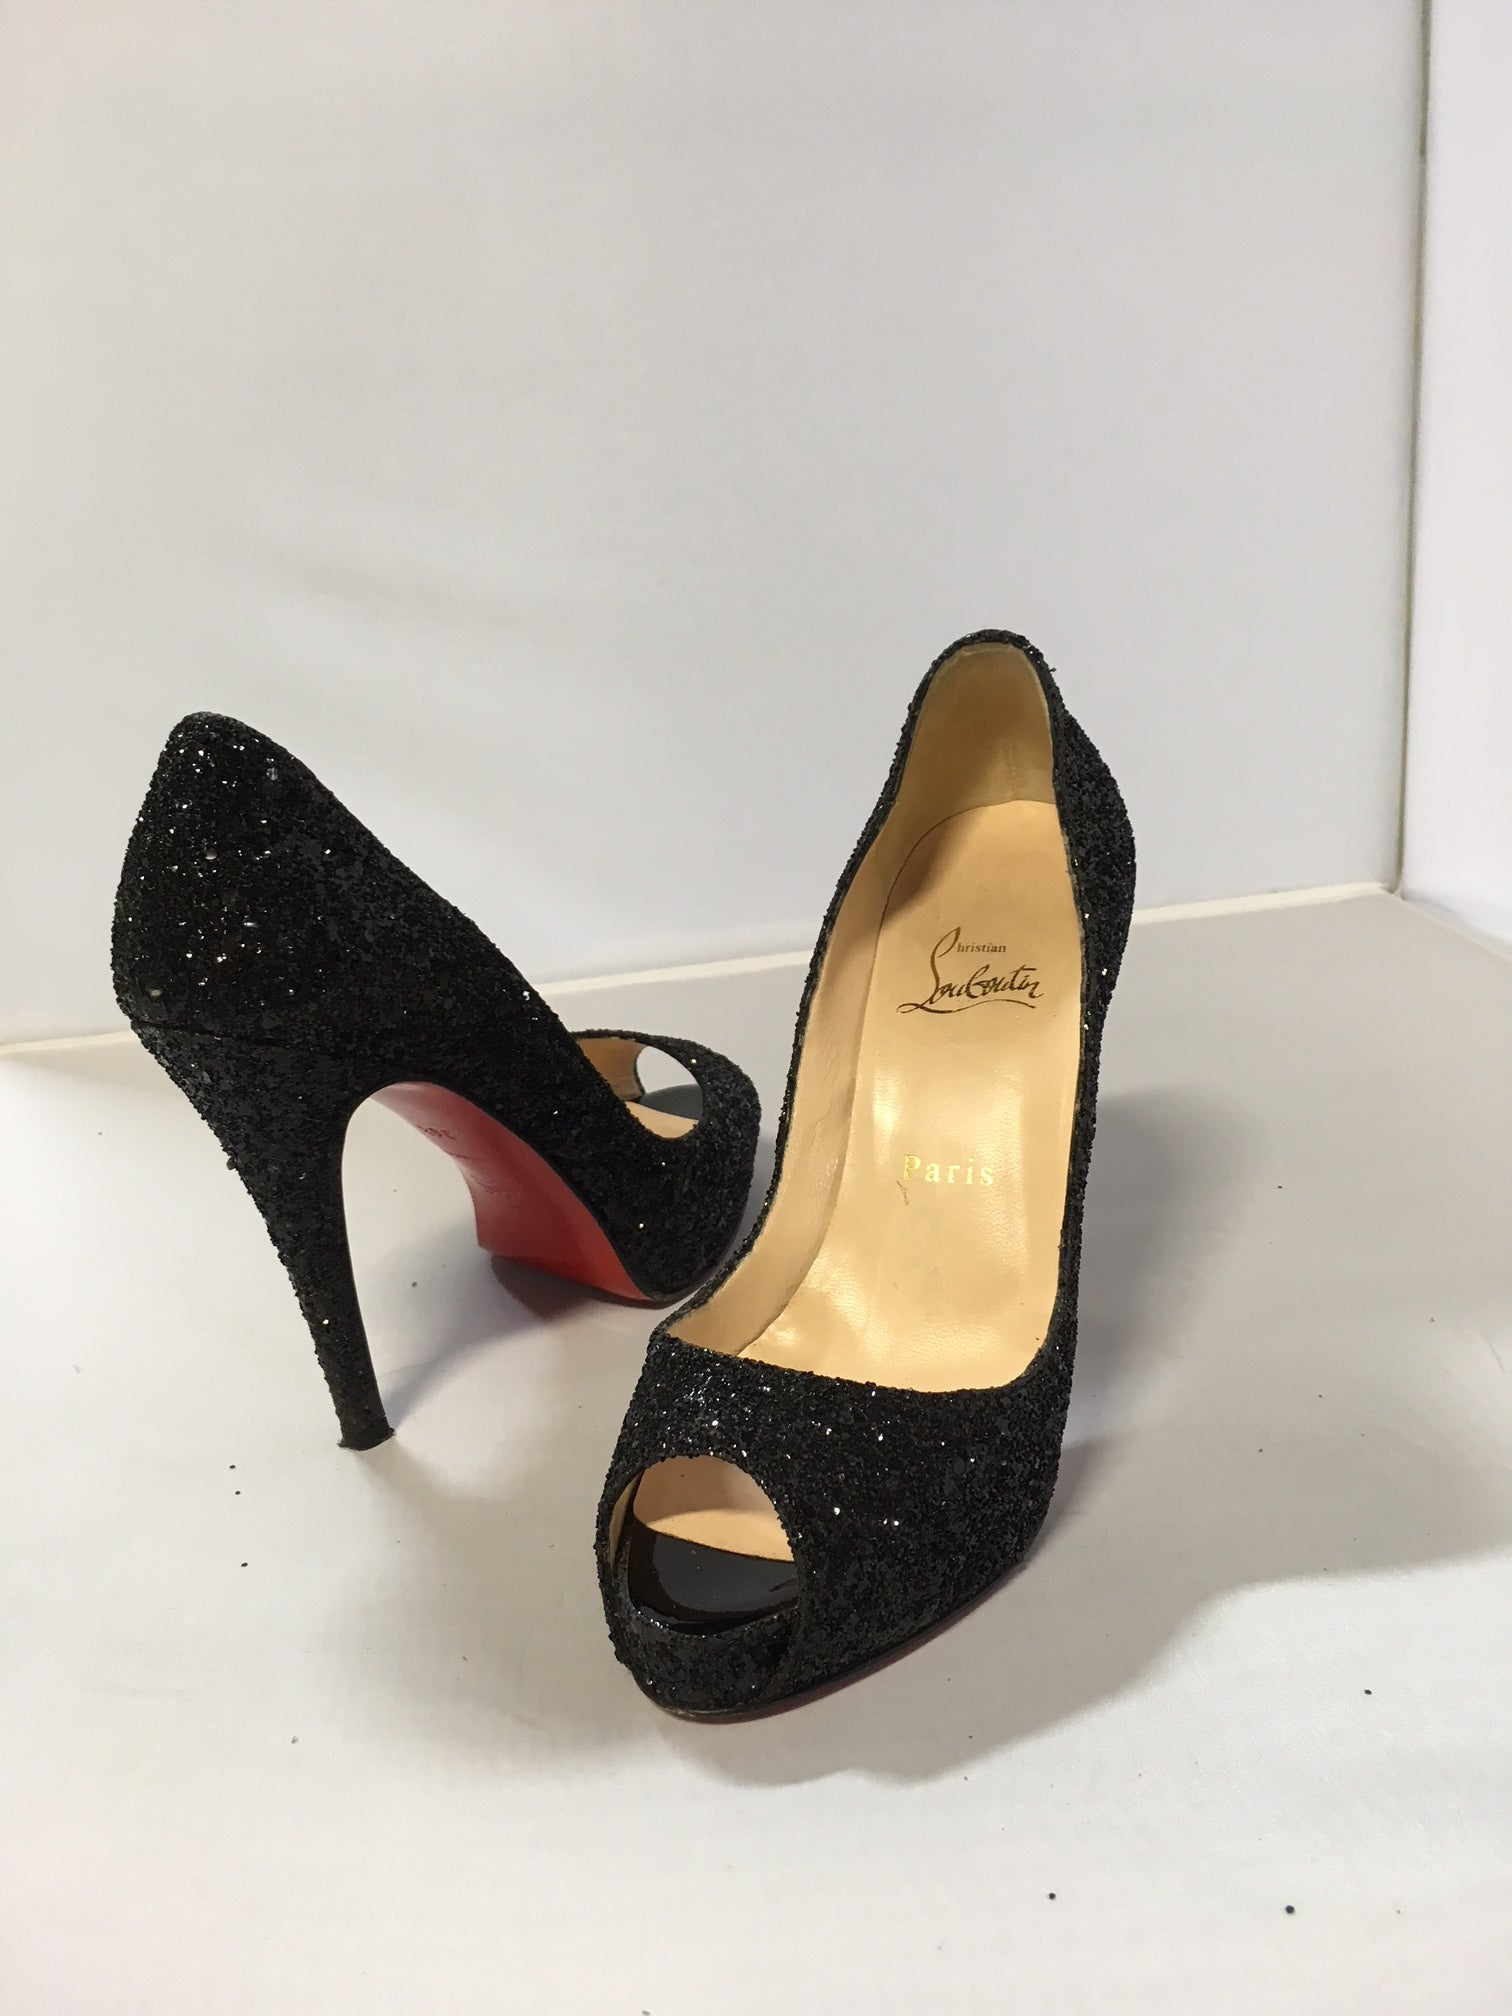 264203434a6 Christian Louboutin Black Sparkle Peep-Toe Pumps – The Recycled ...